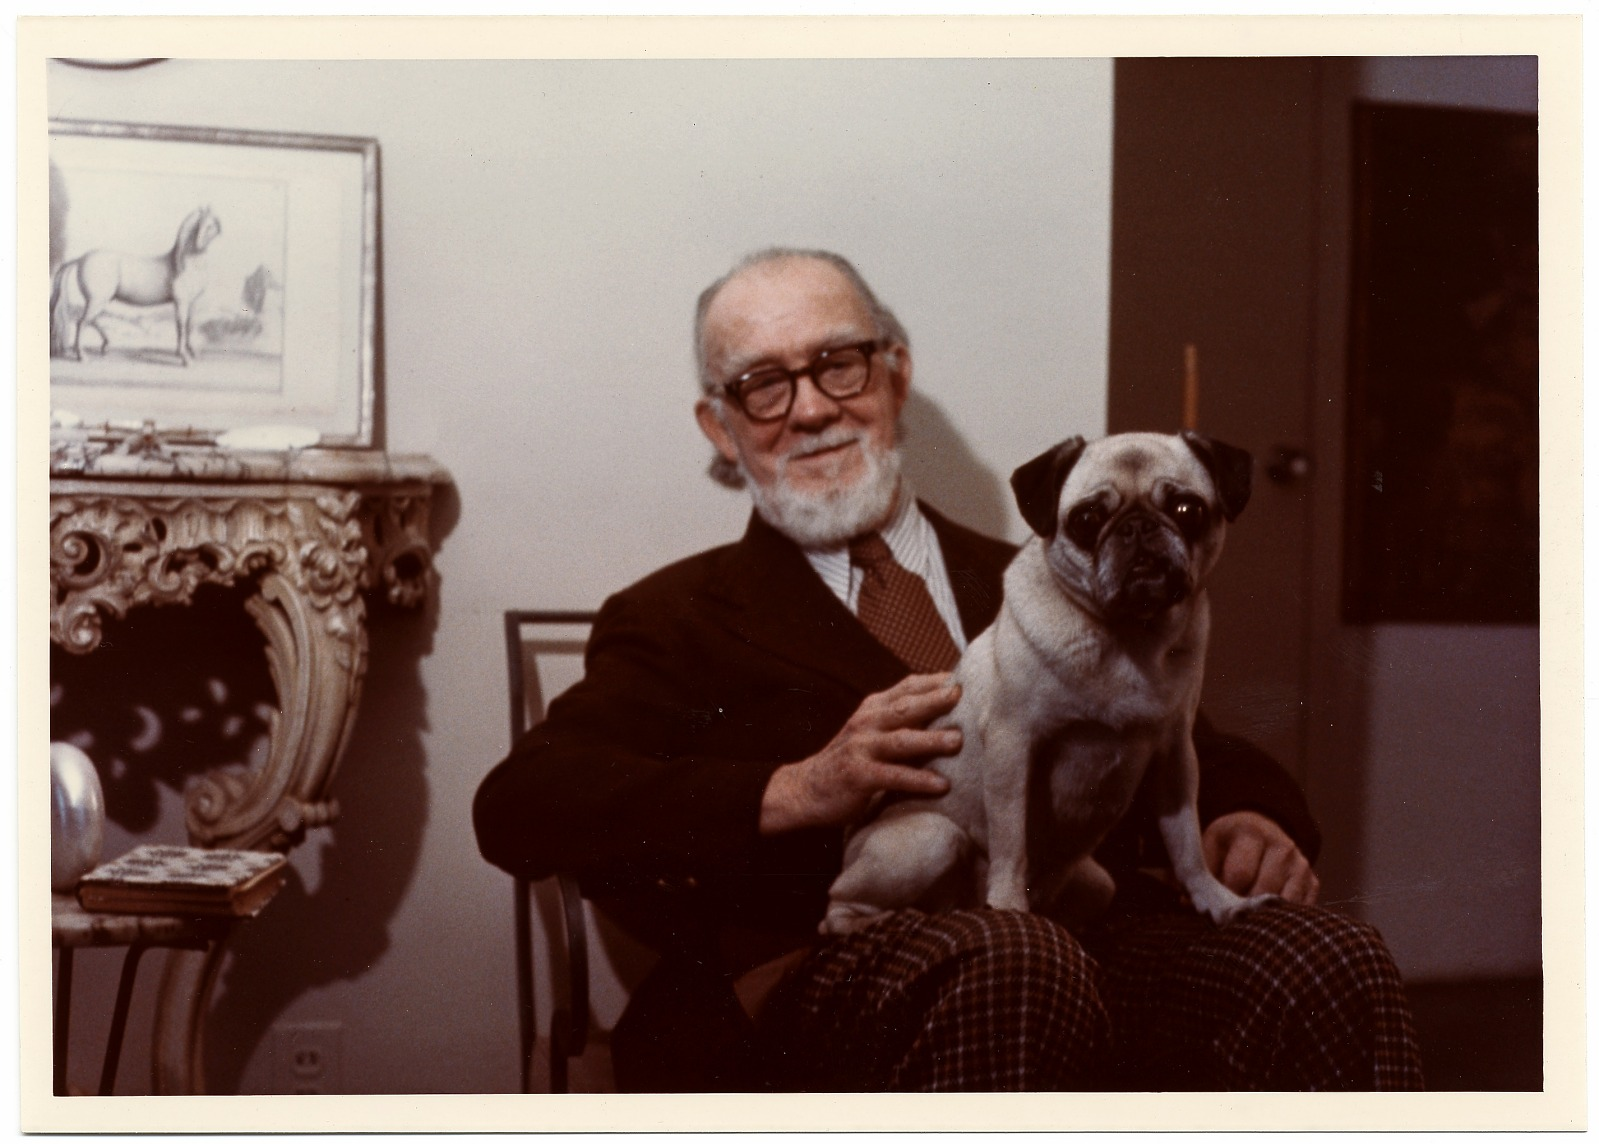 Photograph of Rudi Blesh with his dog